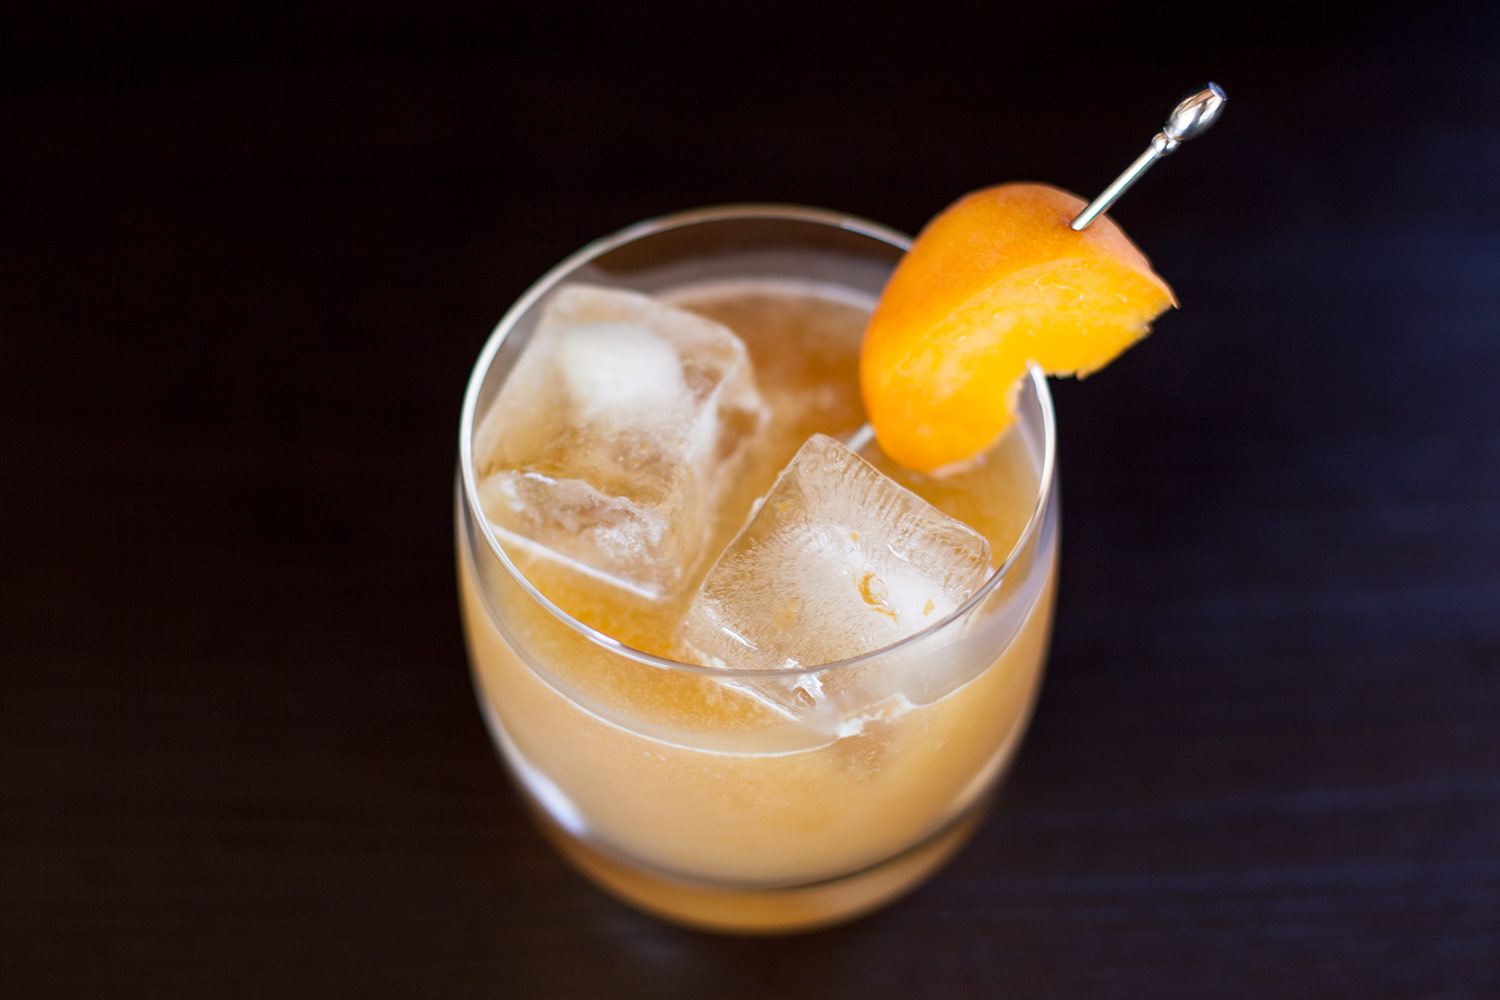 apricot whisky sour